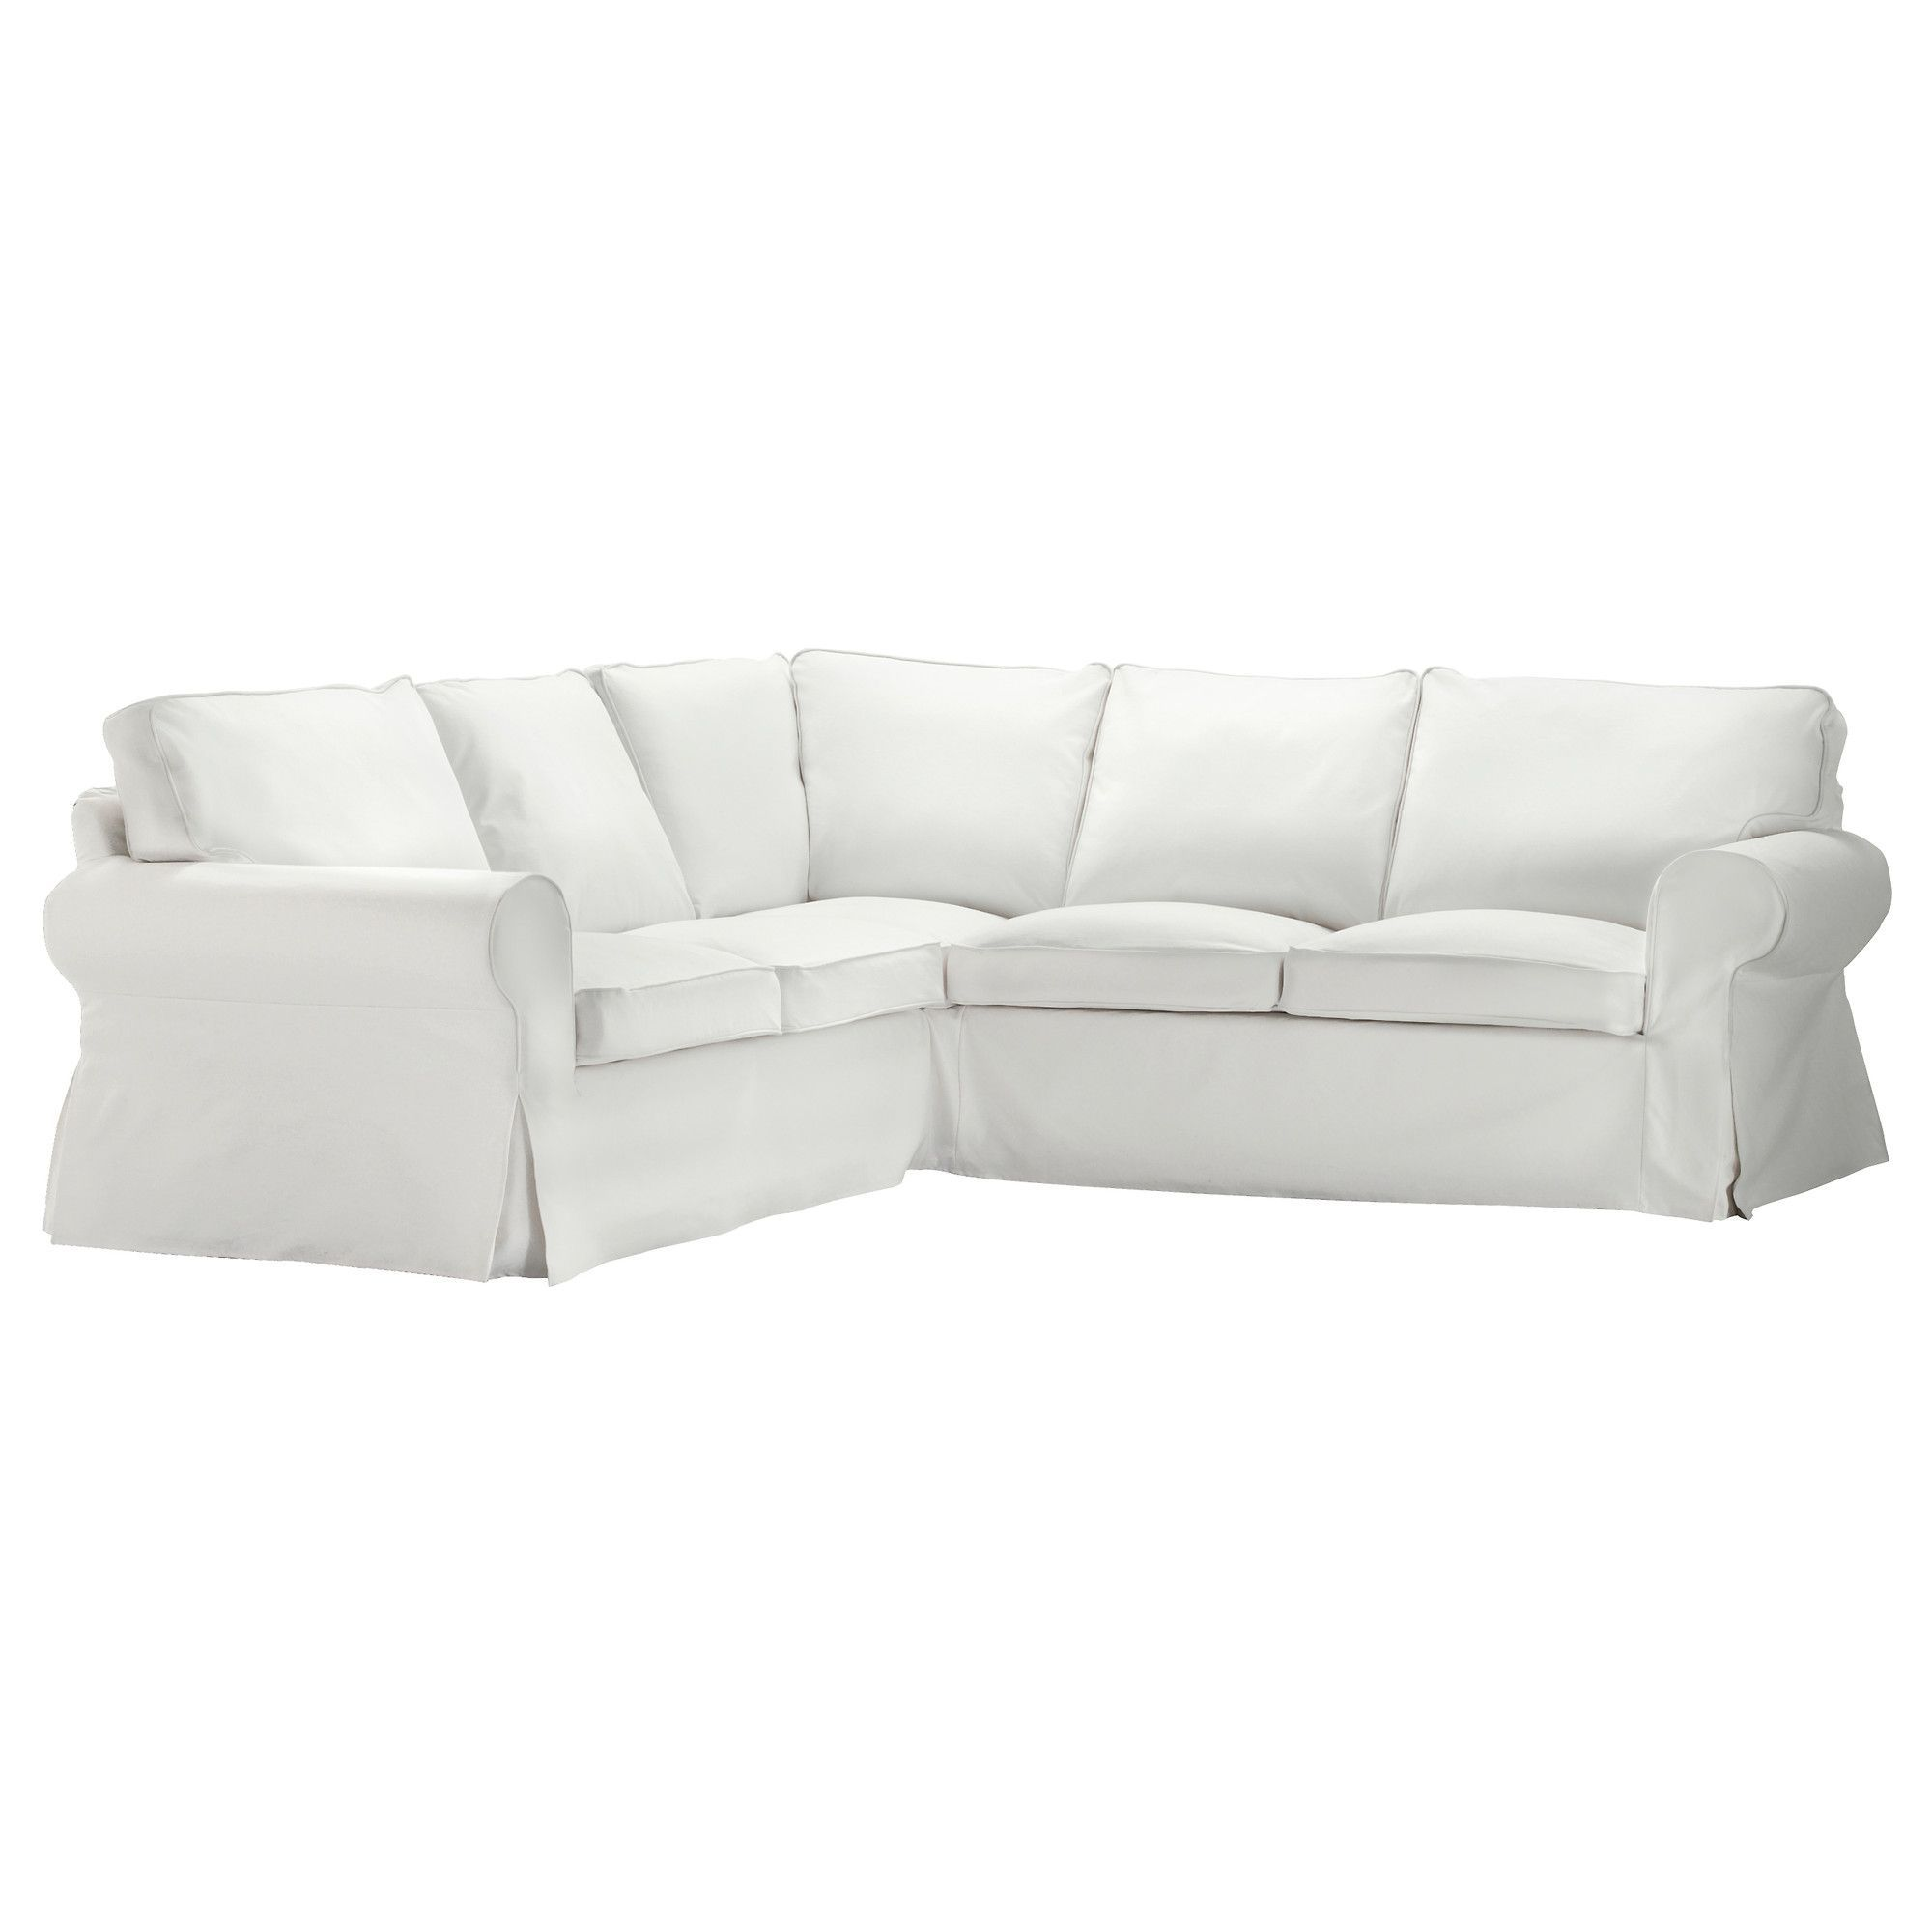 41 Reference Of White Corner Sofa Cover In 2020 White Corner Sofas White Sectional Sofa Corner Sofa Covers